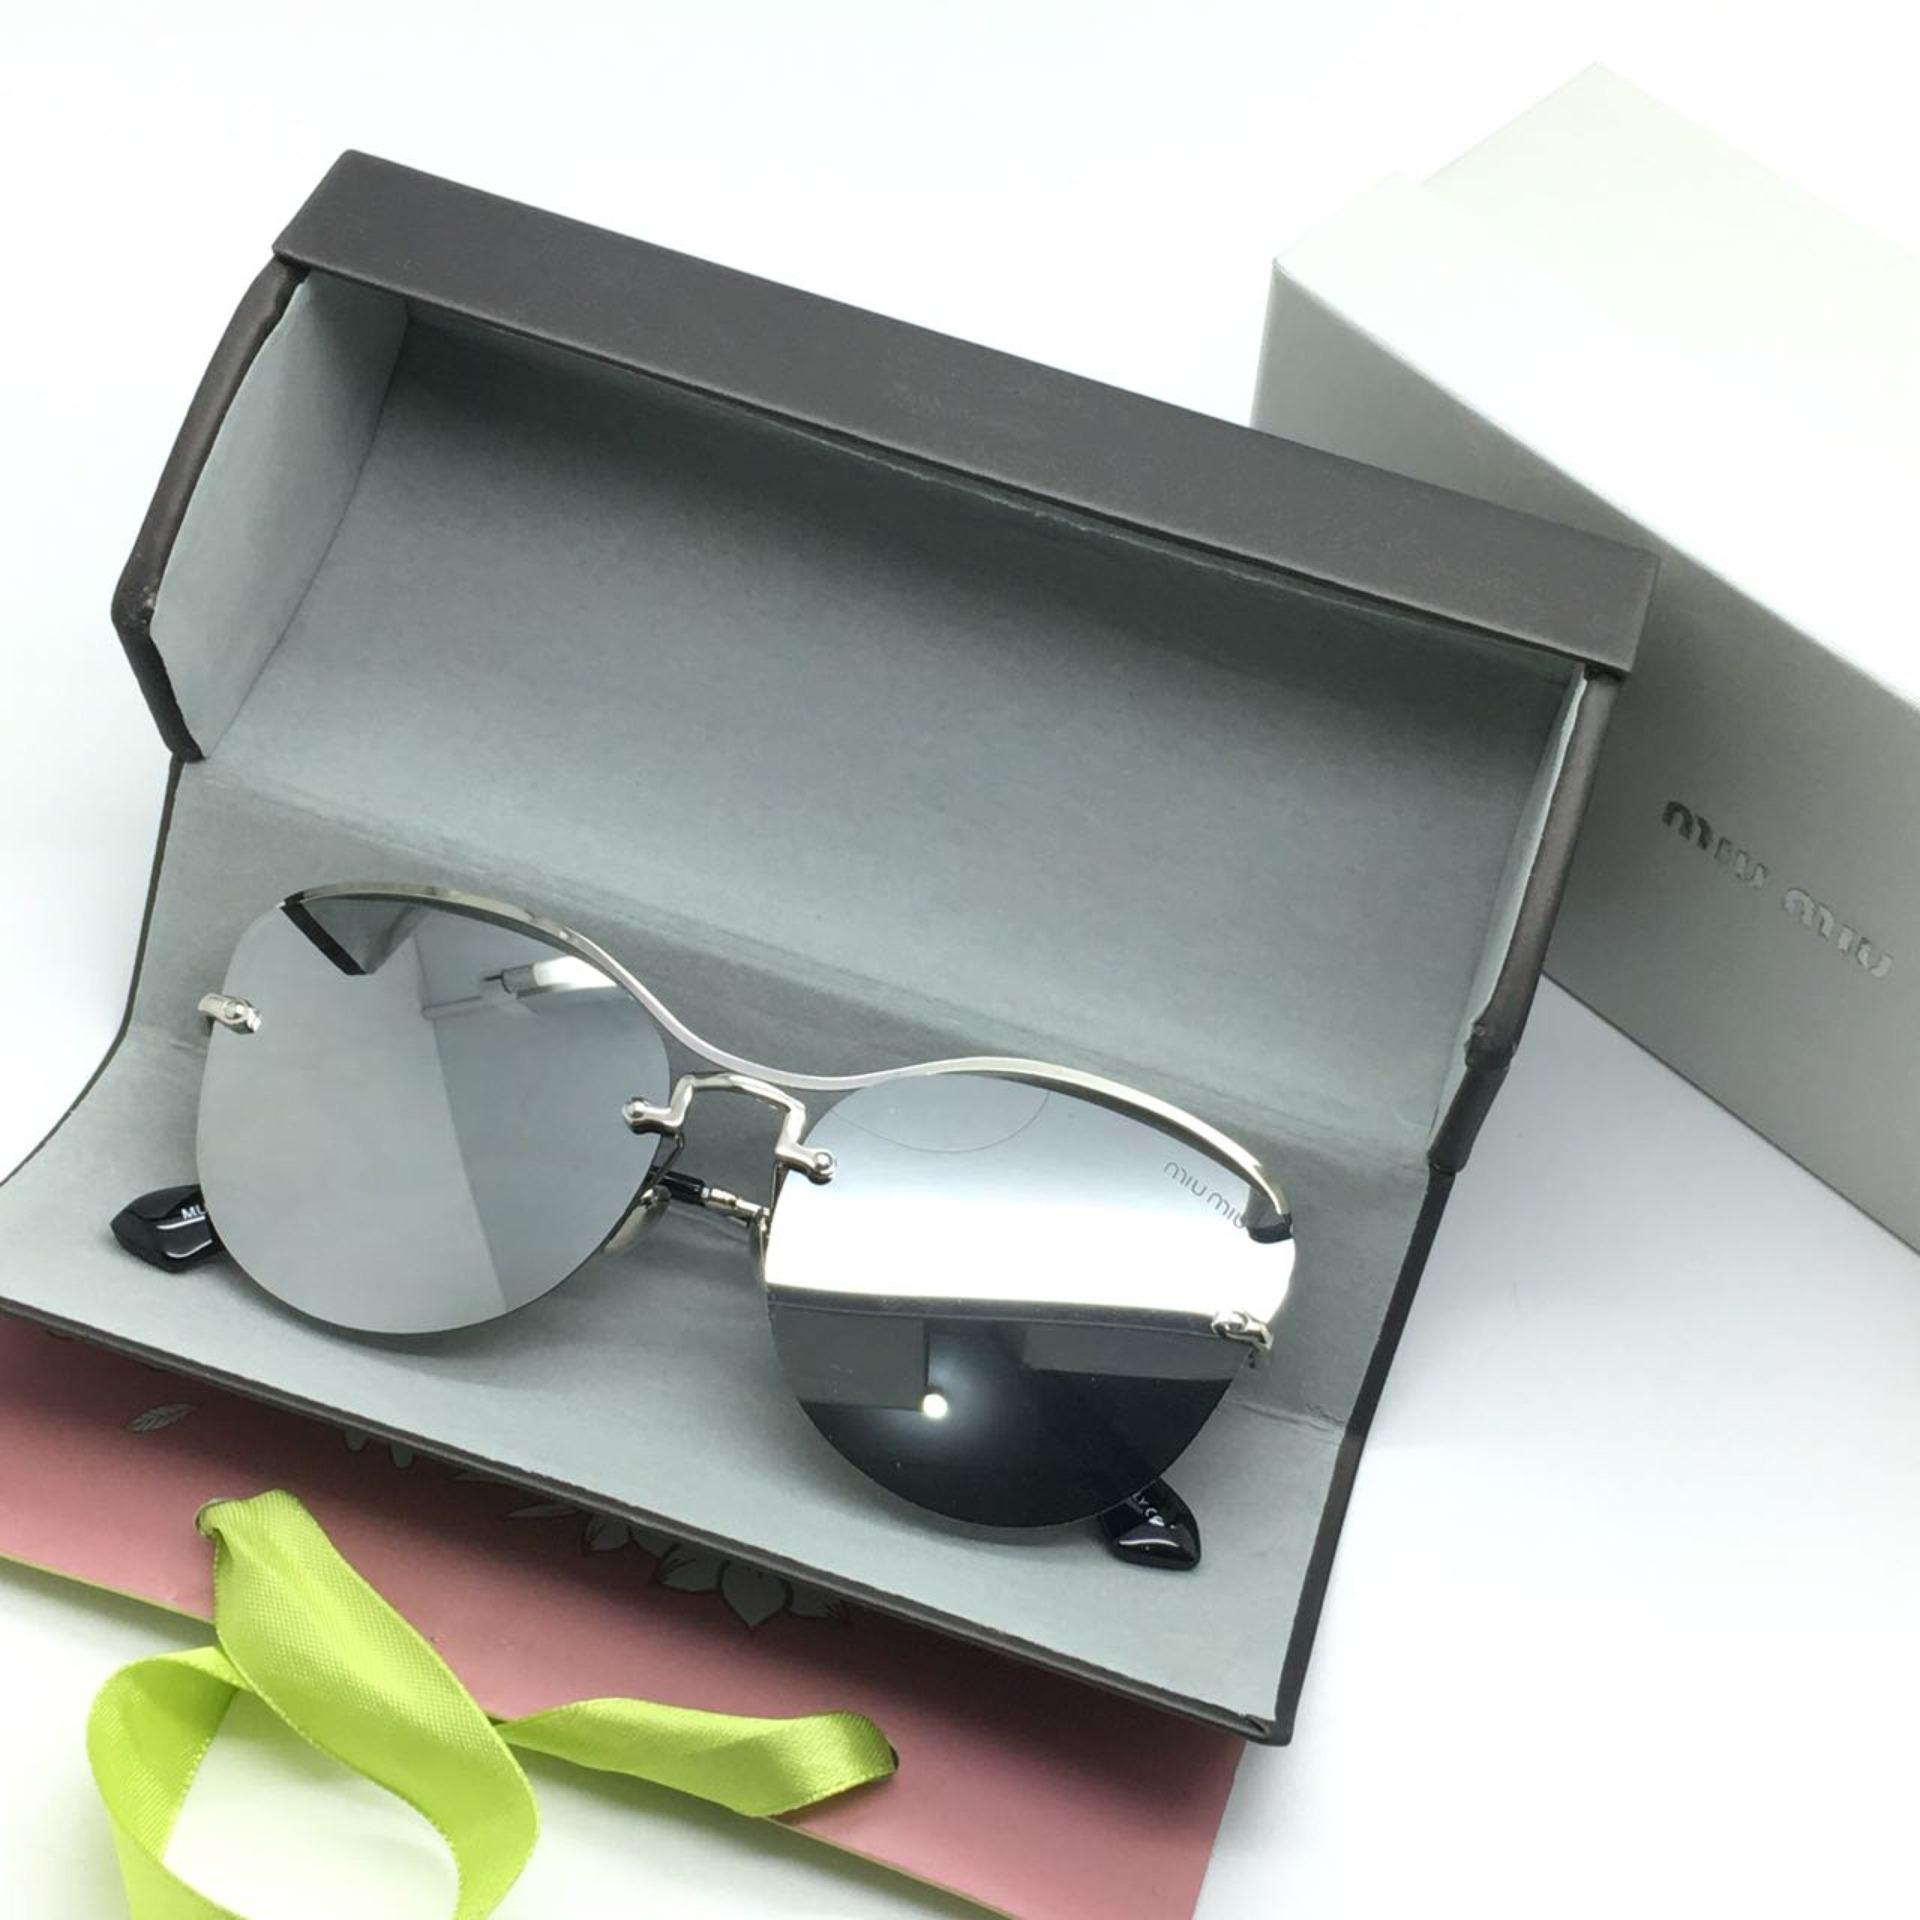 KACAMATA FASHION IMPORT WANITA SUNGLASSES MODEL CAT EYE MODERN TERBARU